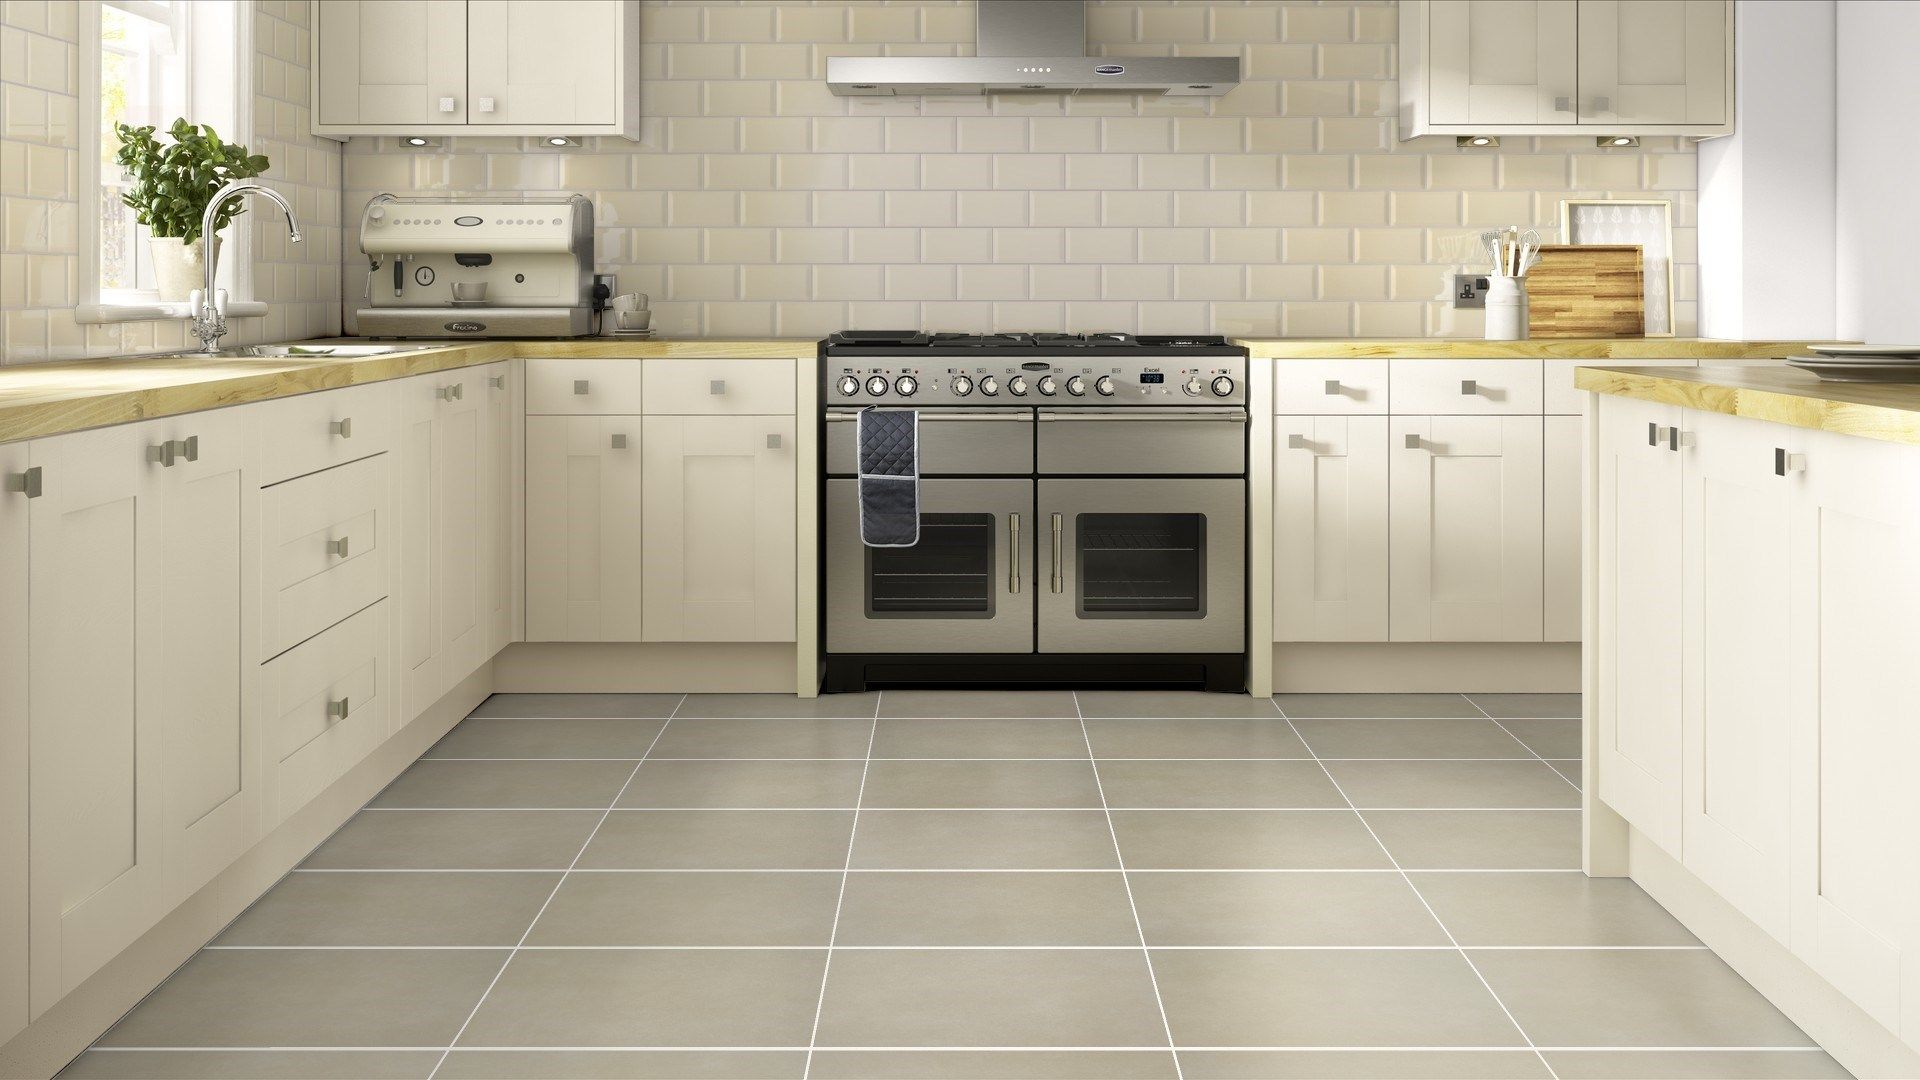 Oc Kitchen And Flooring Bevelled Cream Wall And Sativa Bone Floor Idesign Pinterest